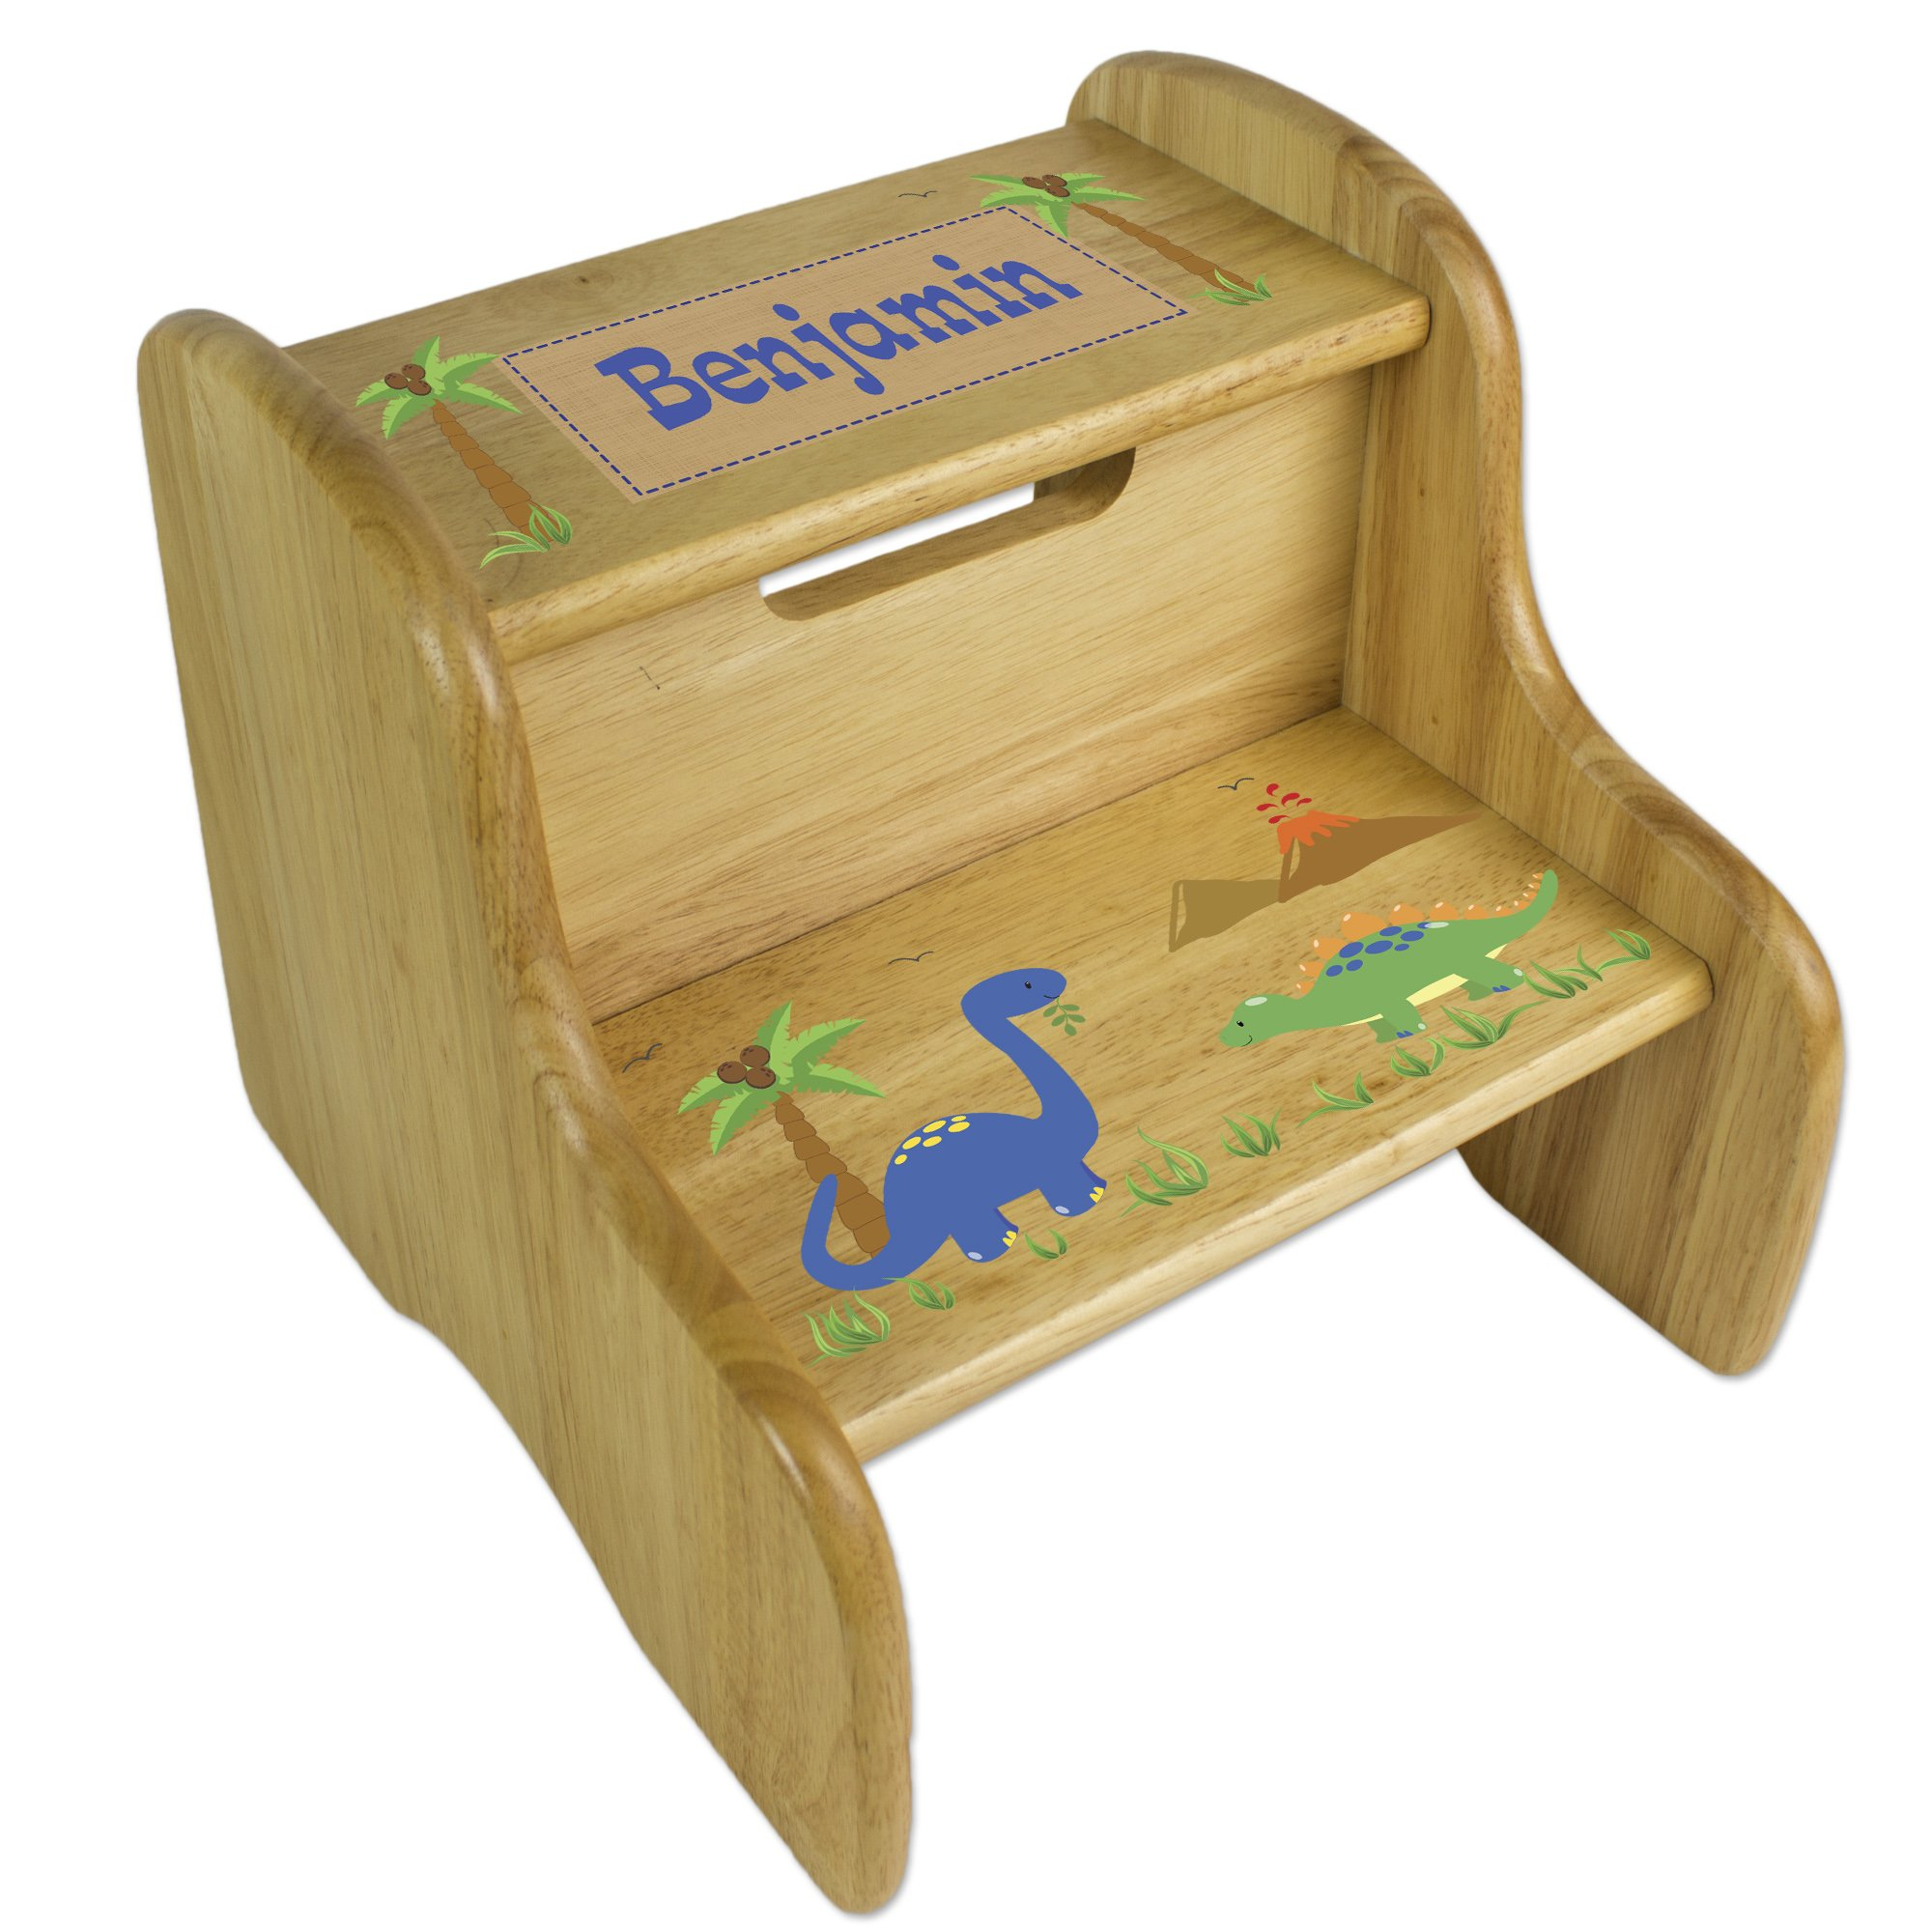 Personalized Wooden Dinosaur Step Stool